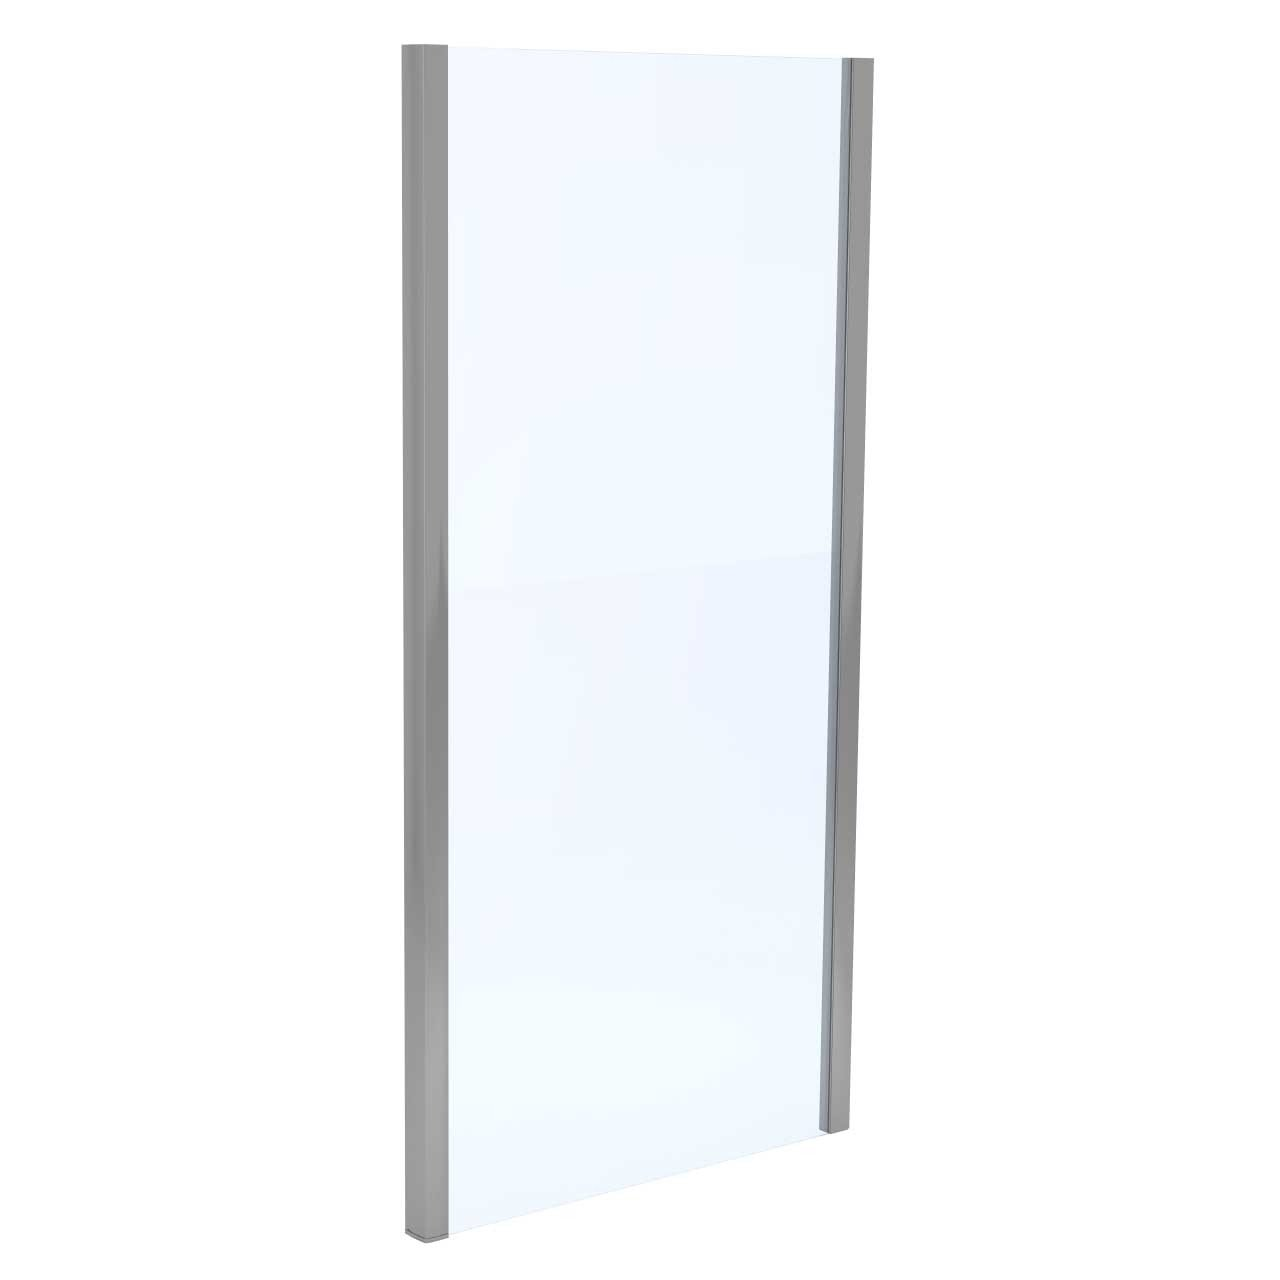 Series 8 900 x 900 Hinged Door Enclosure